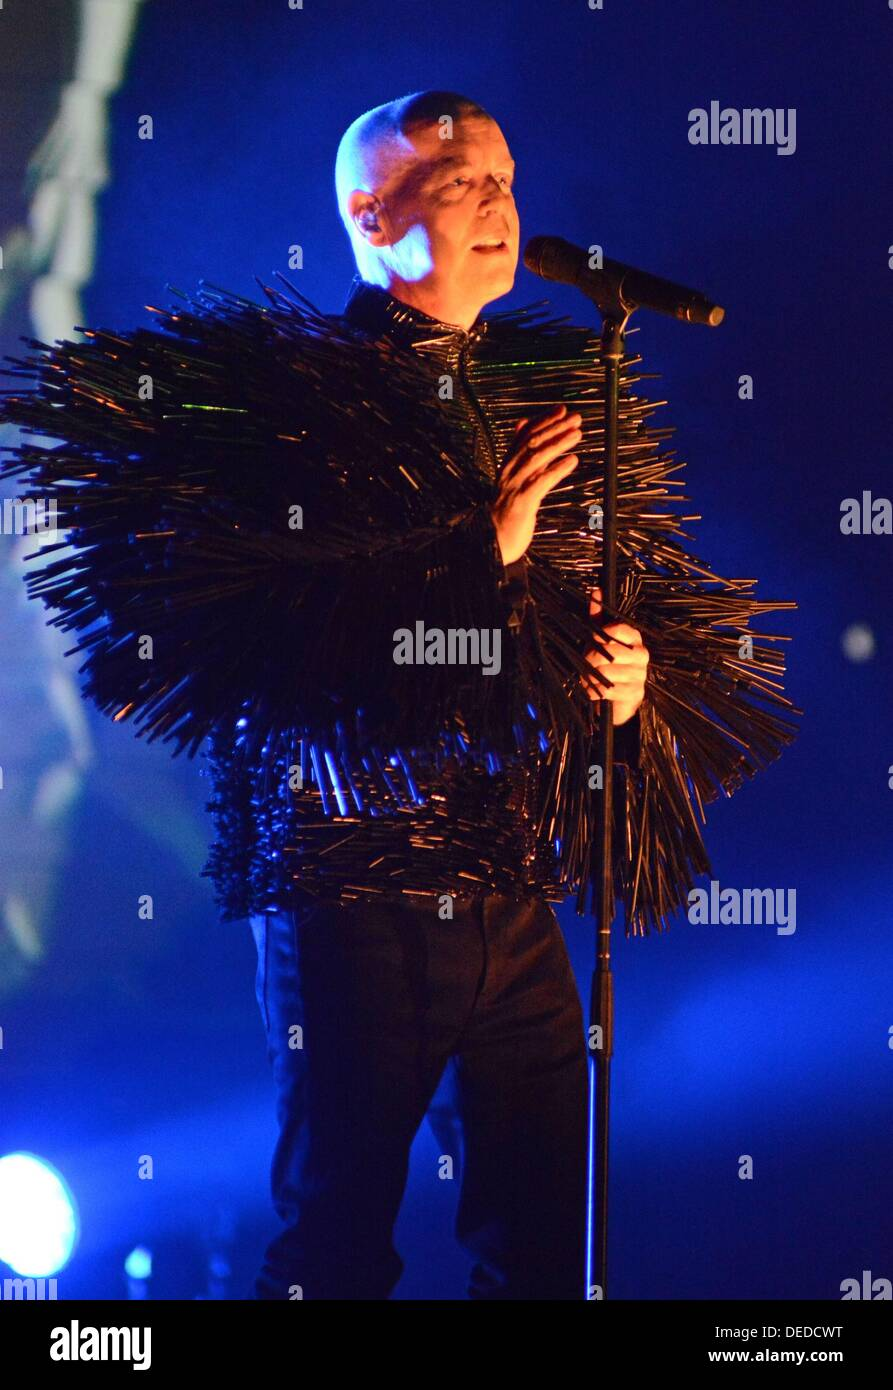 New York, NY. 16th Sep, 2013. Neil Tennant in attendance for PET SHOP BOYS in Concert, Beacon Theatre, New York, NY September 16, 2013. © Derek Storm/Everett Collection/Alamy Live News - Stock Image